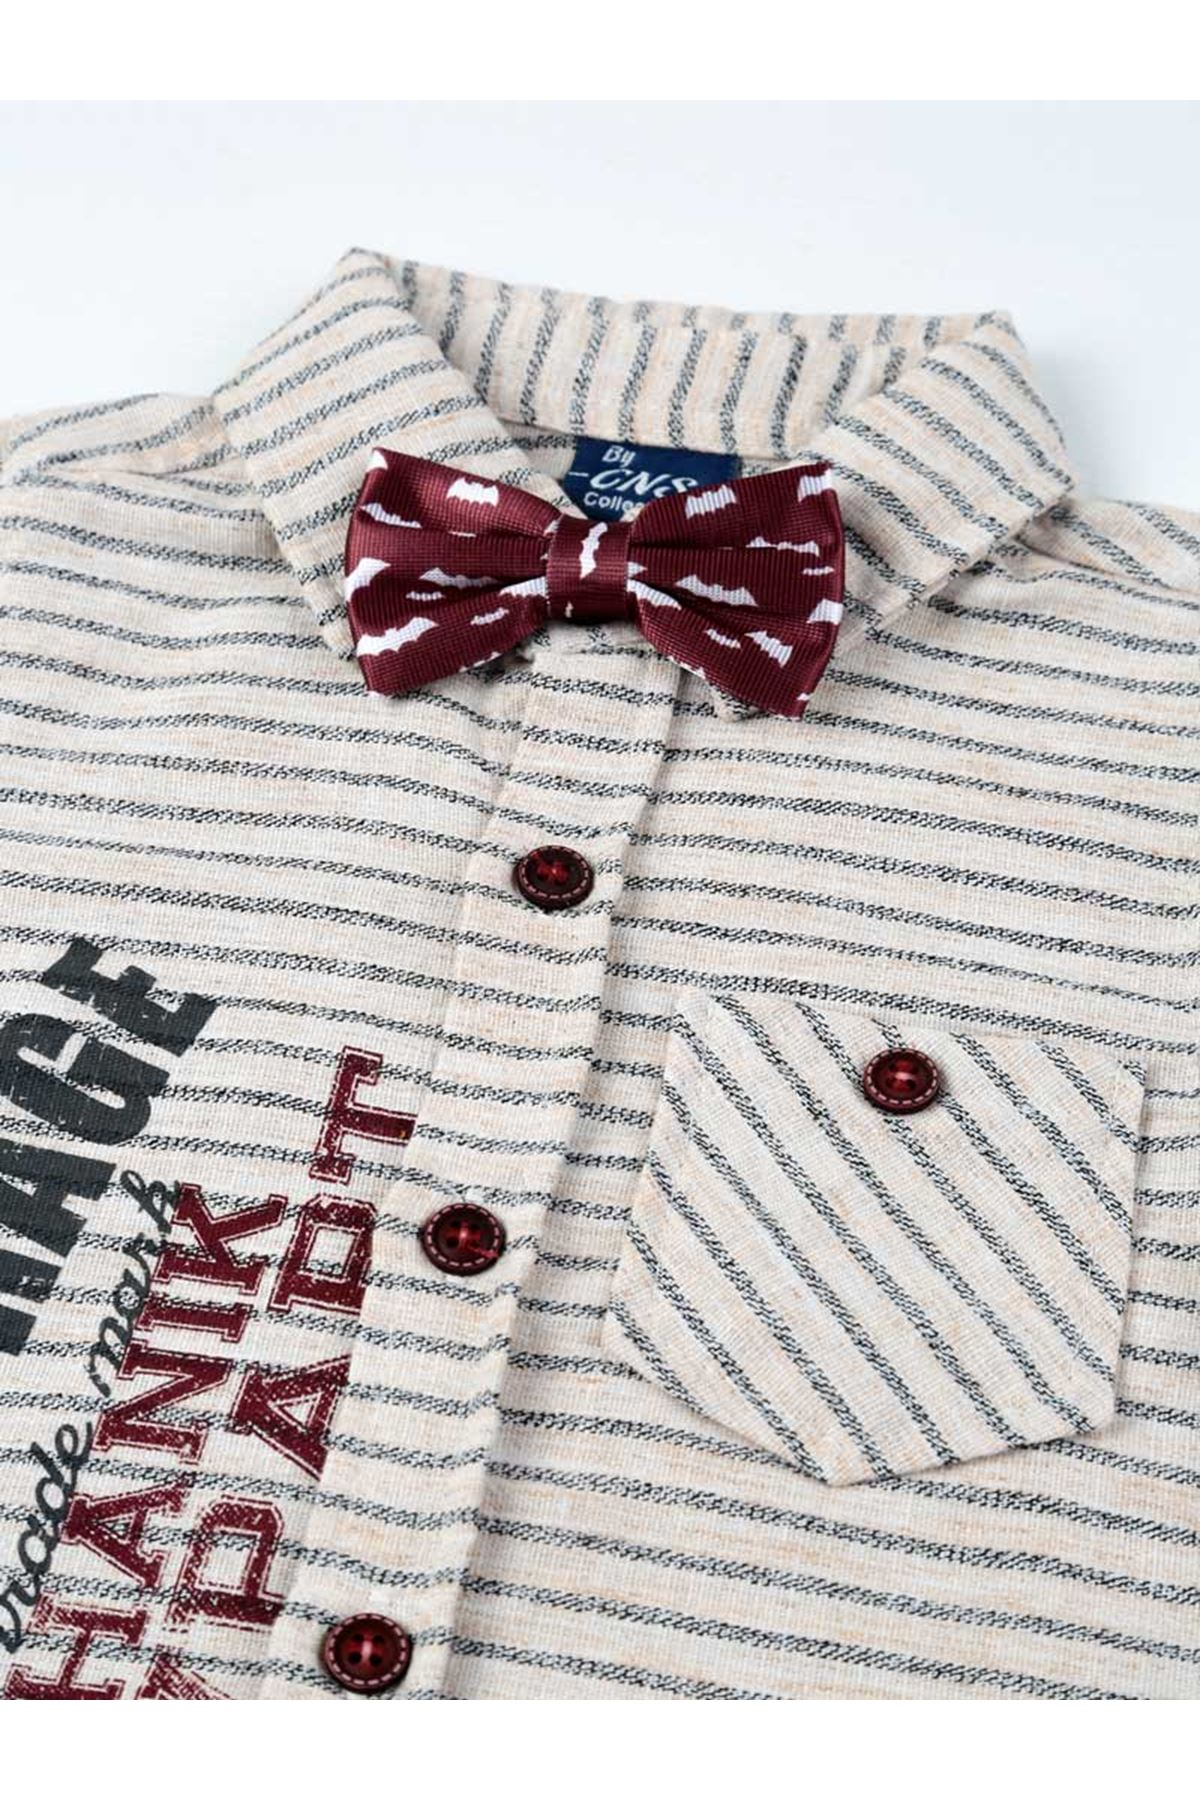 Boys clothing summer shorts belt shirt bow tie sets 4-piece daily holiday special occasions cotton fabric kids outfit